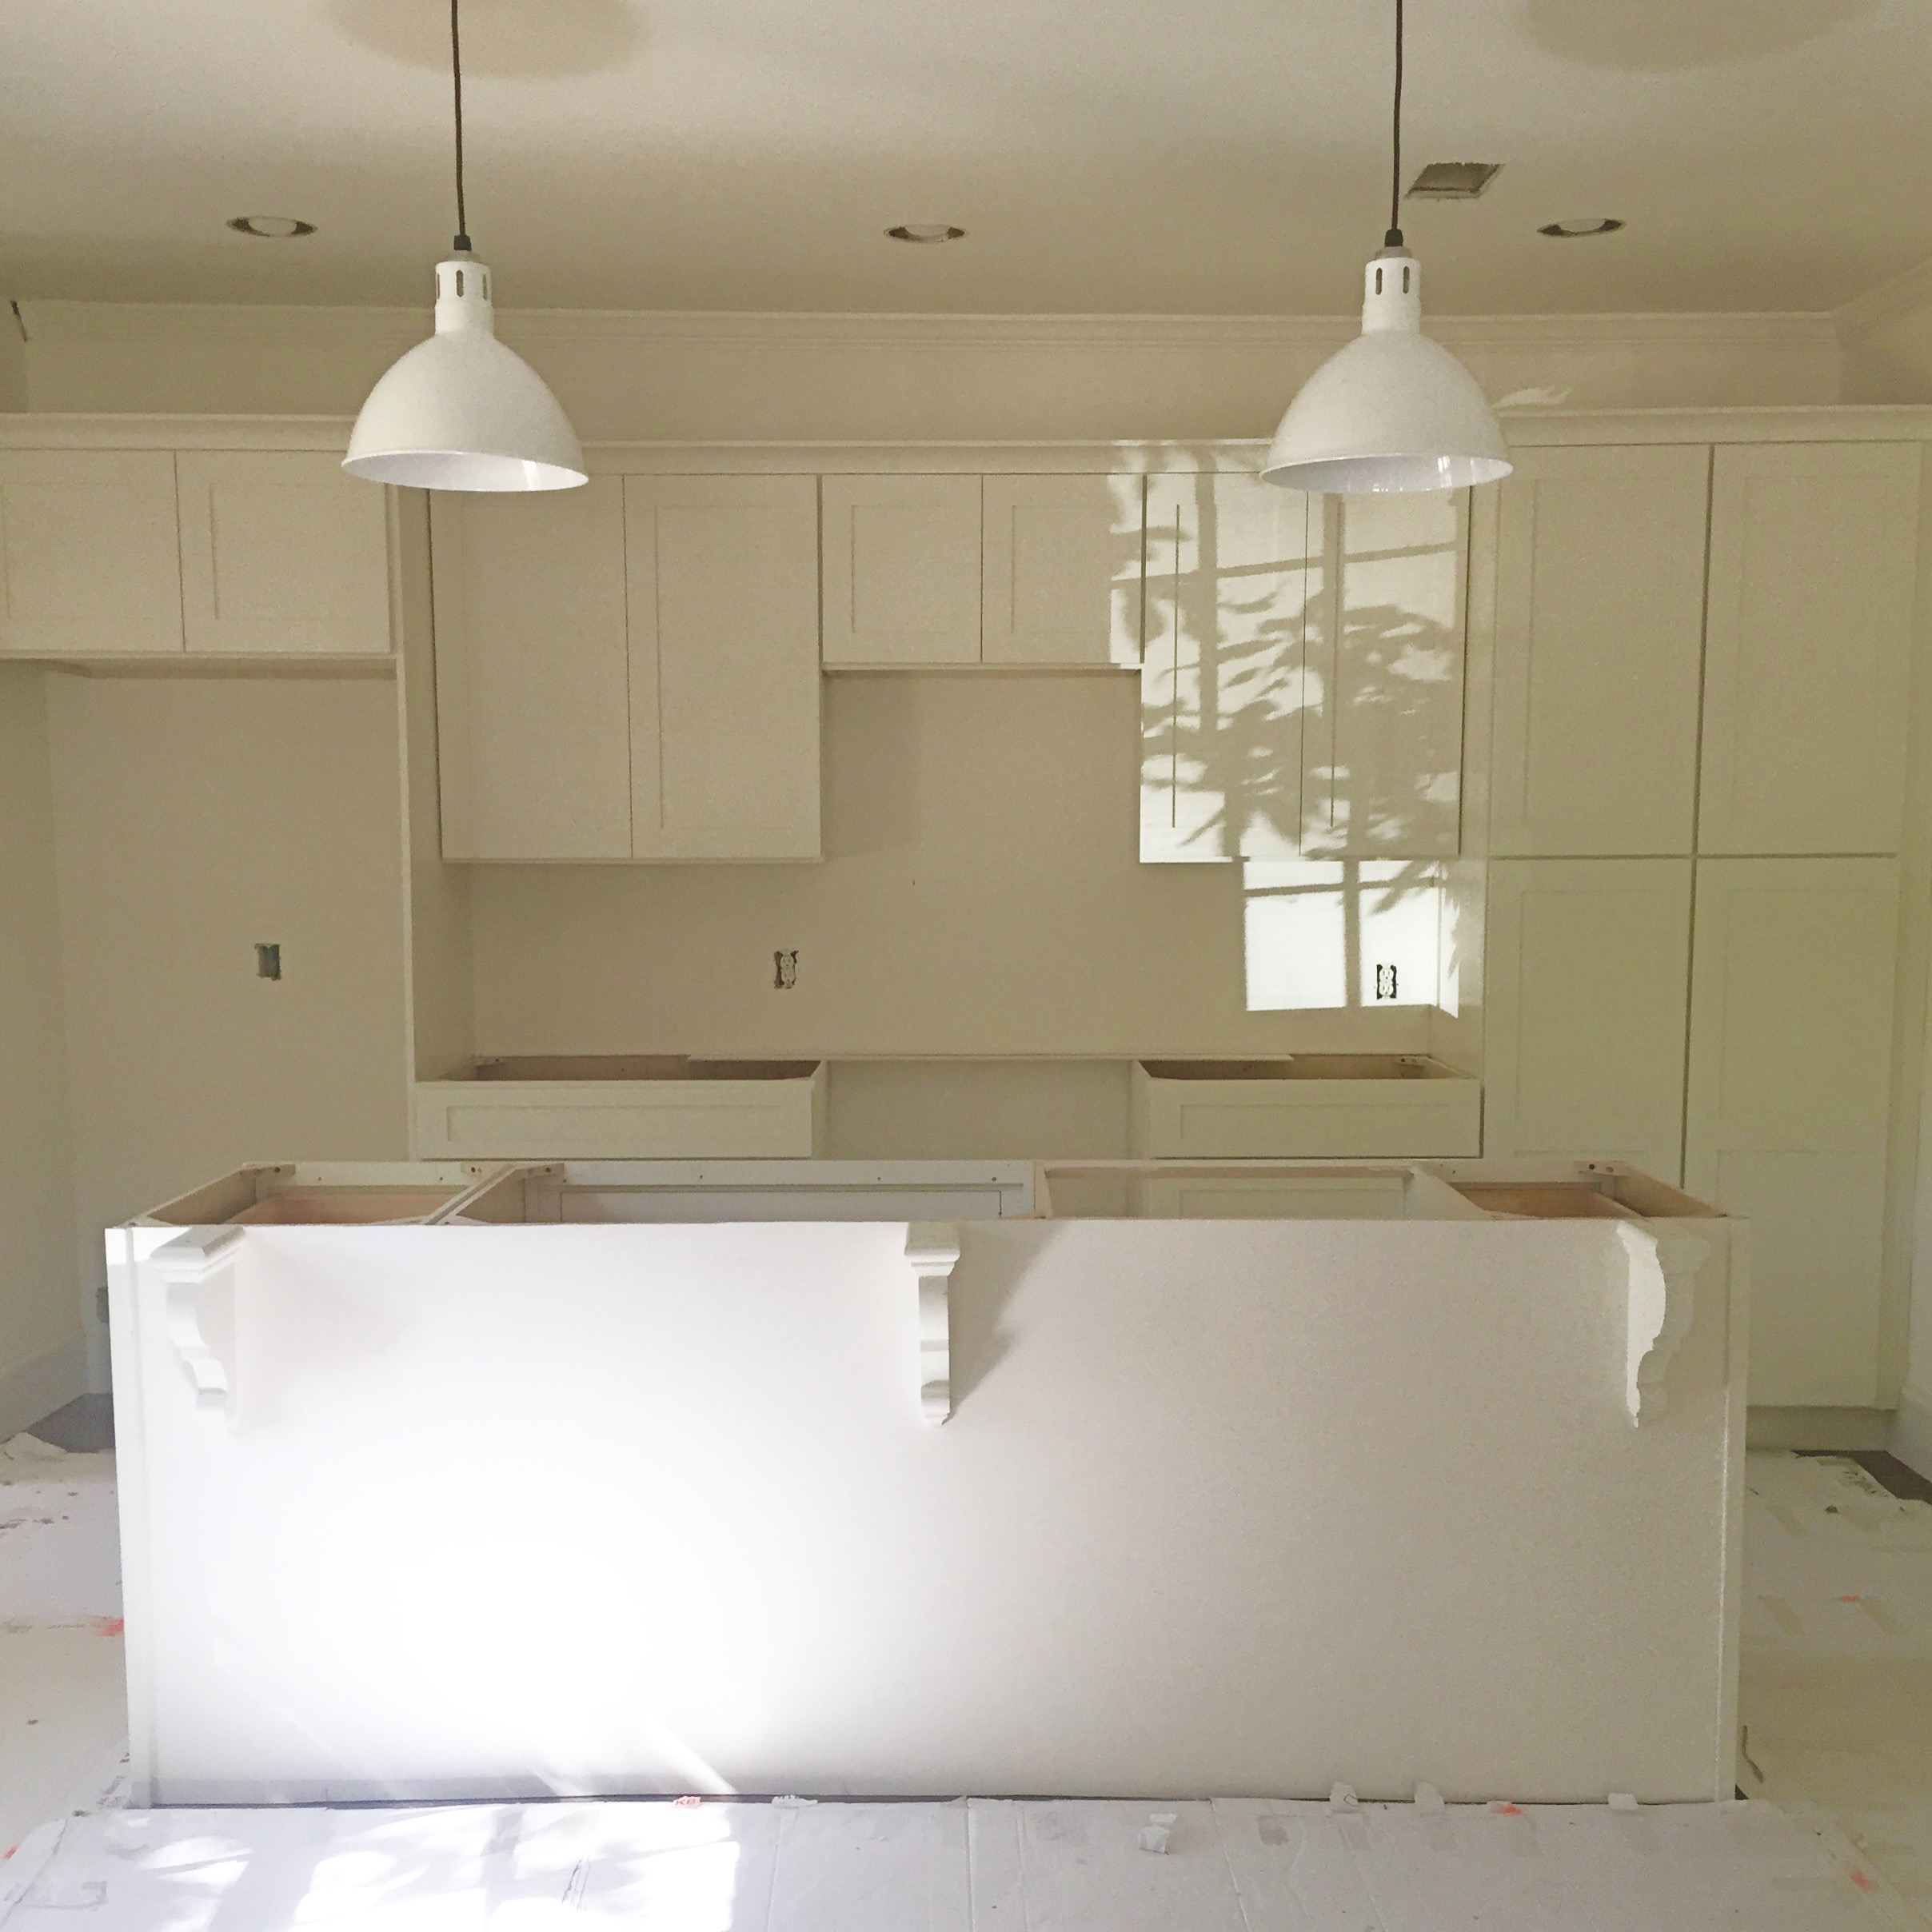 All white kitchen with rustic pendants - subway tile backsplash and marble countertops will complete this space!